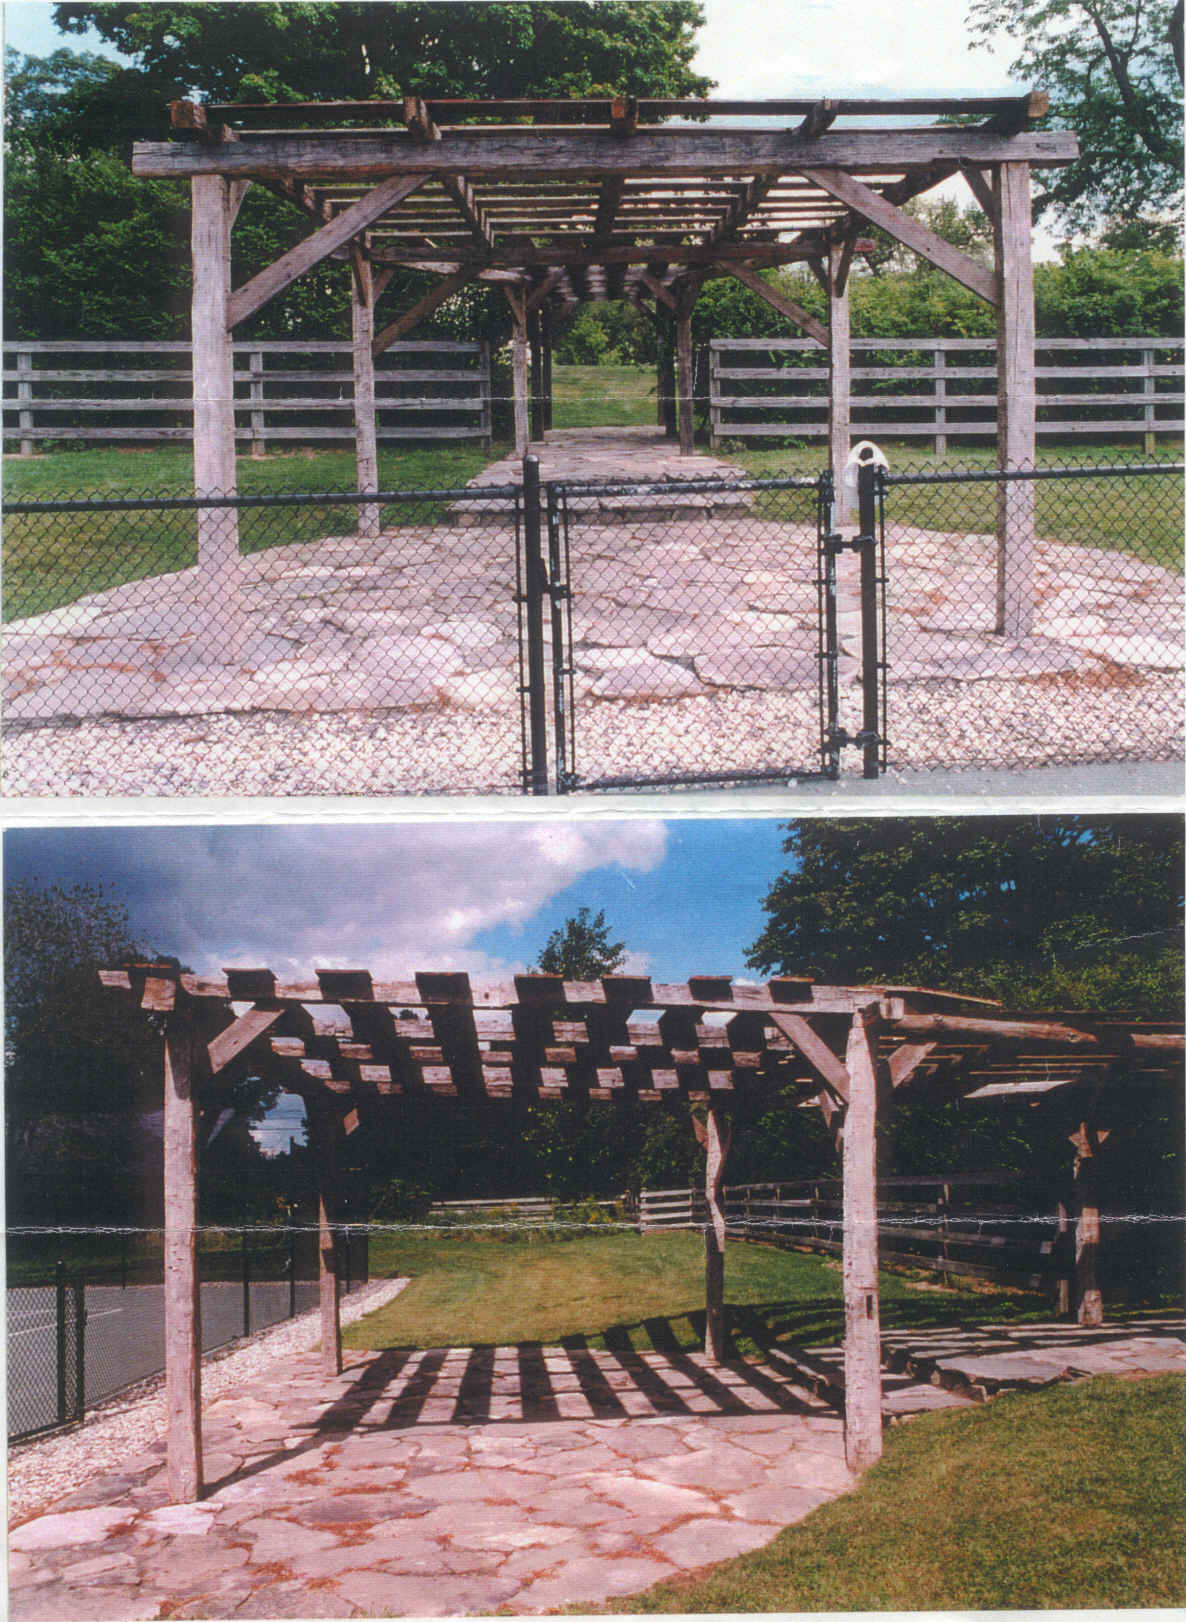 Pergola constructed of antique barn beams